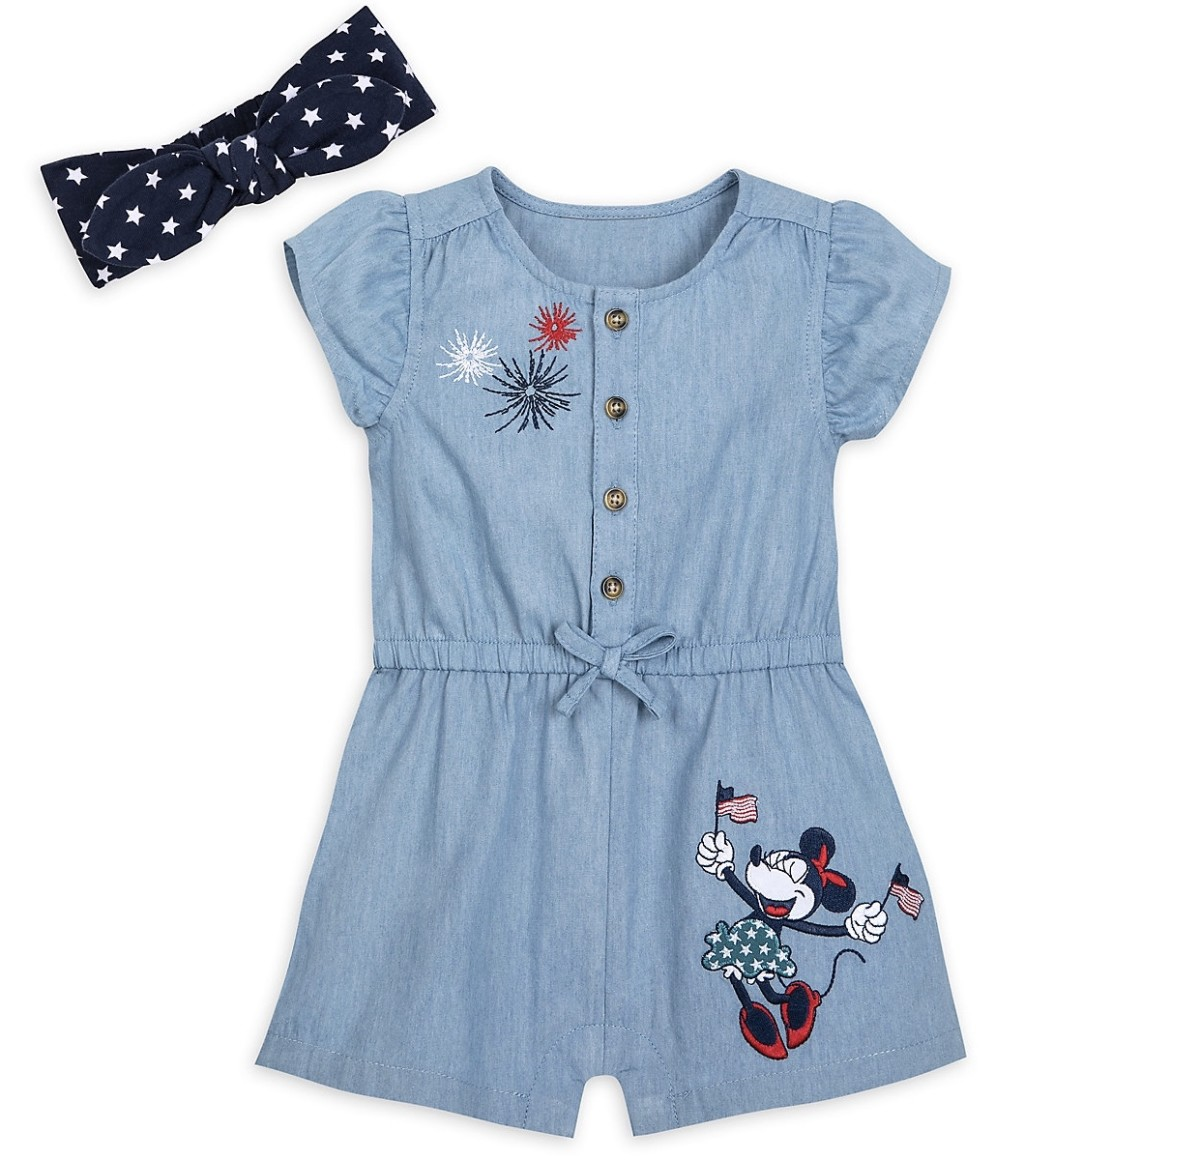 New Disney Americana Merchandise Now on shopDisney 6